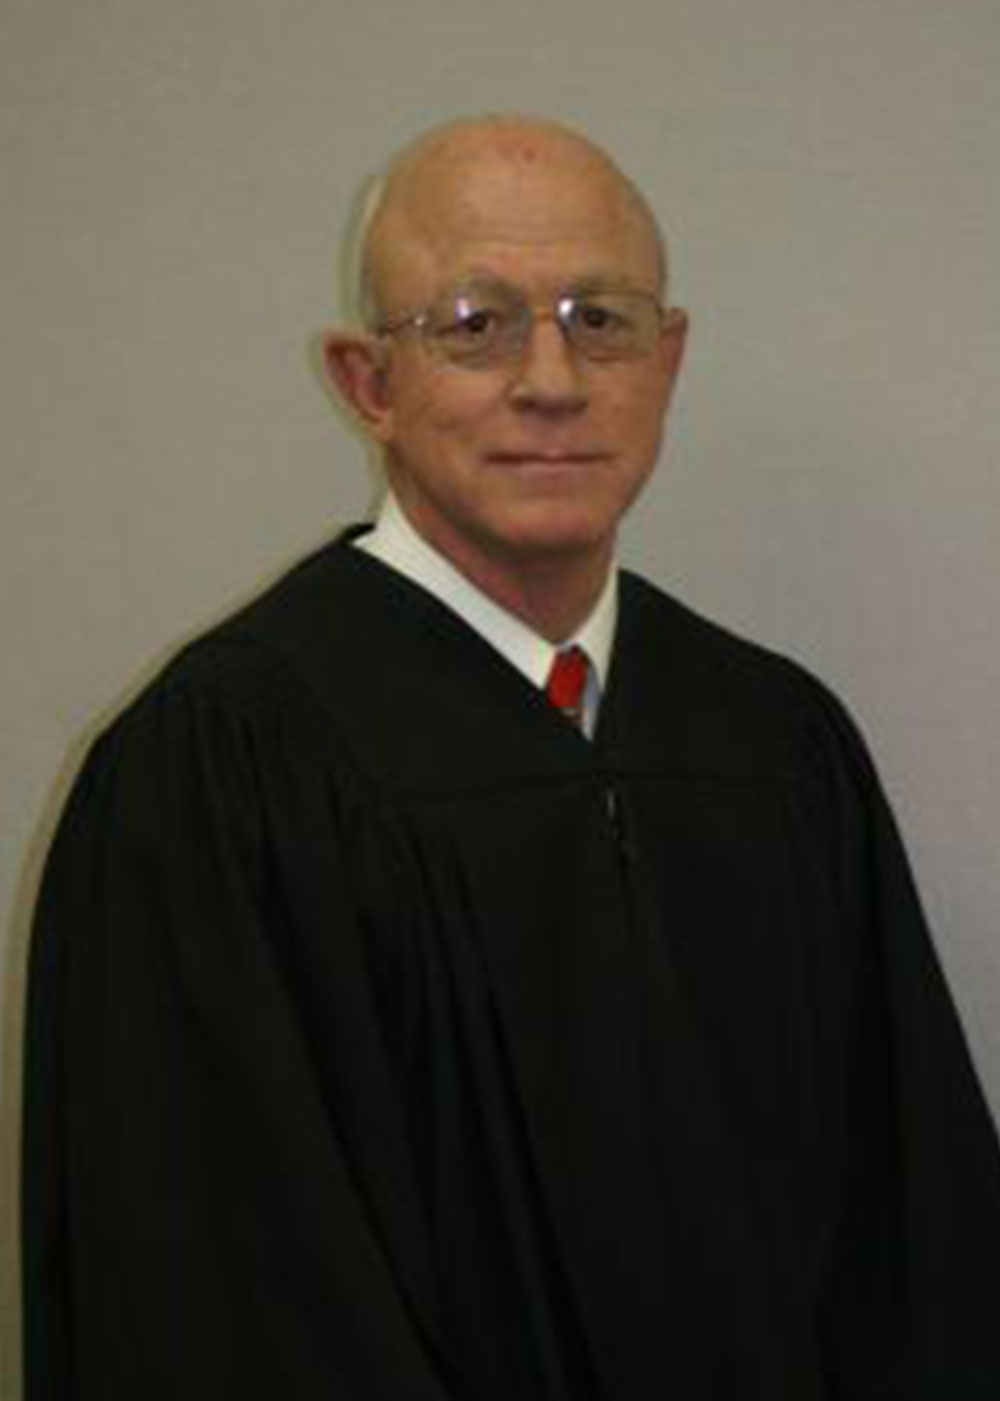 Judge Joseph Smith